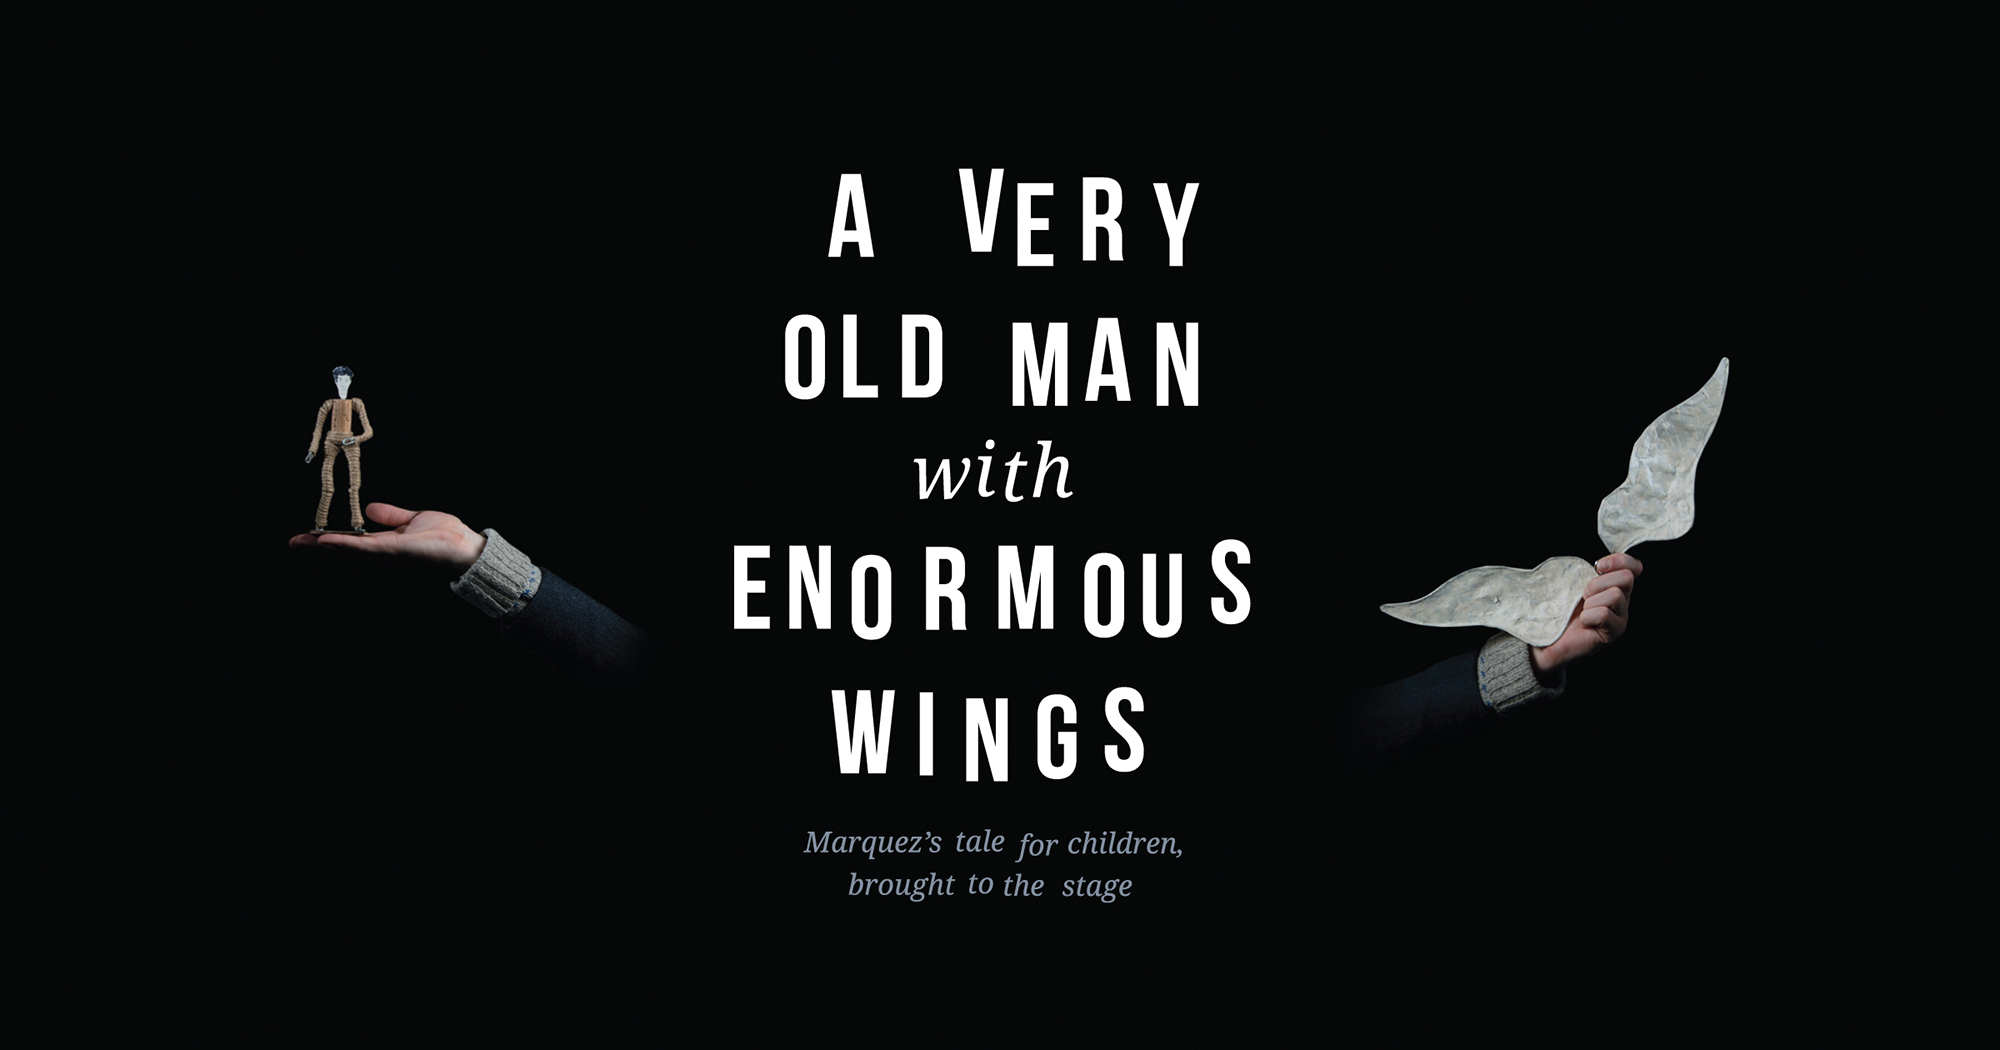 Cover image: A Very Old Man with Enormous Wings